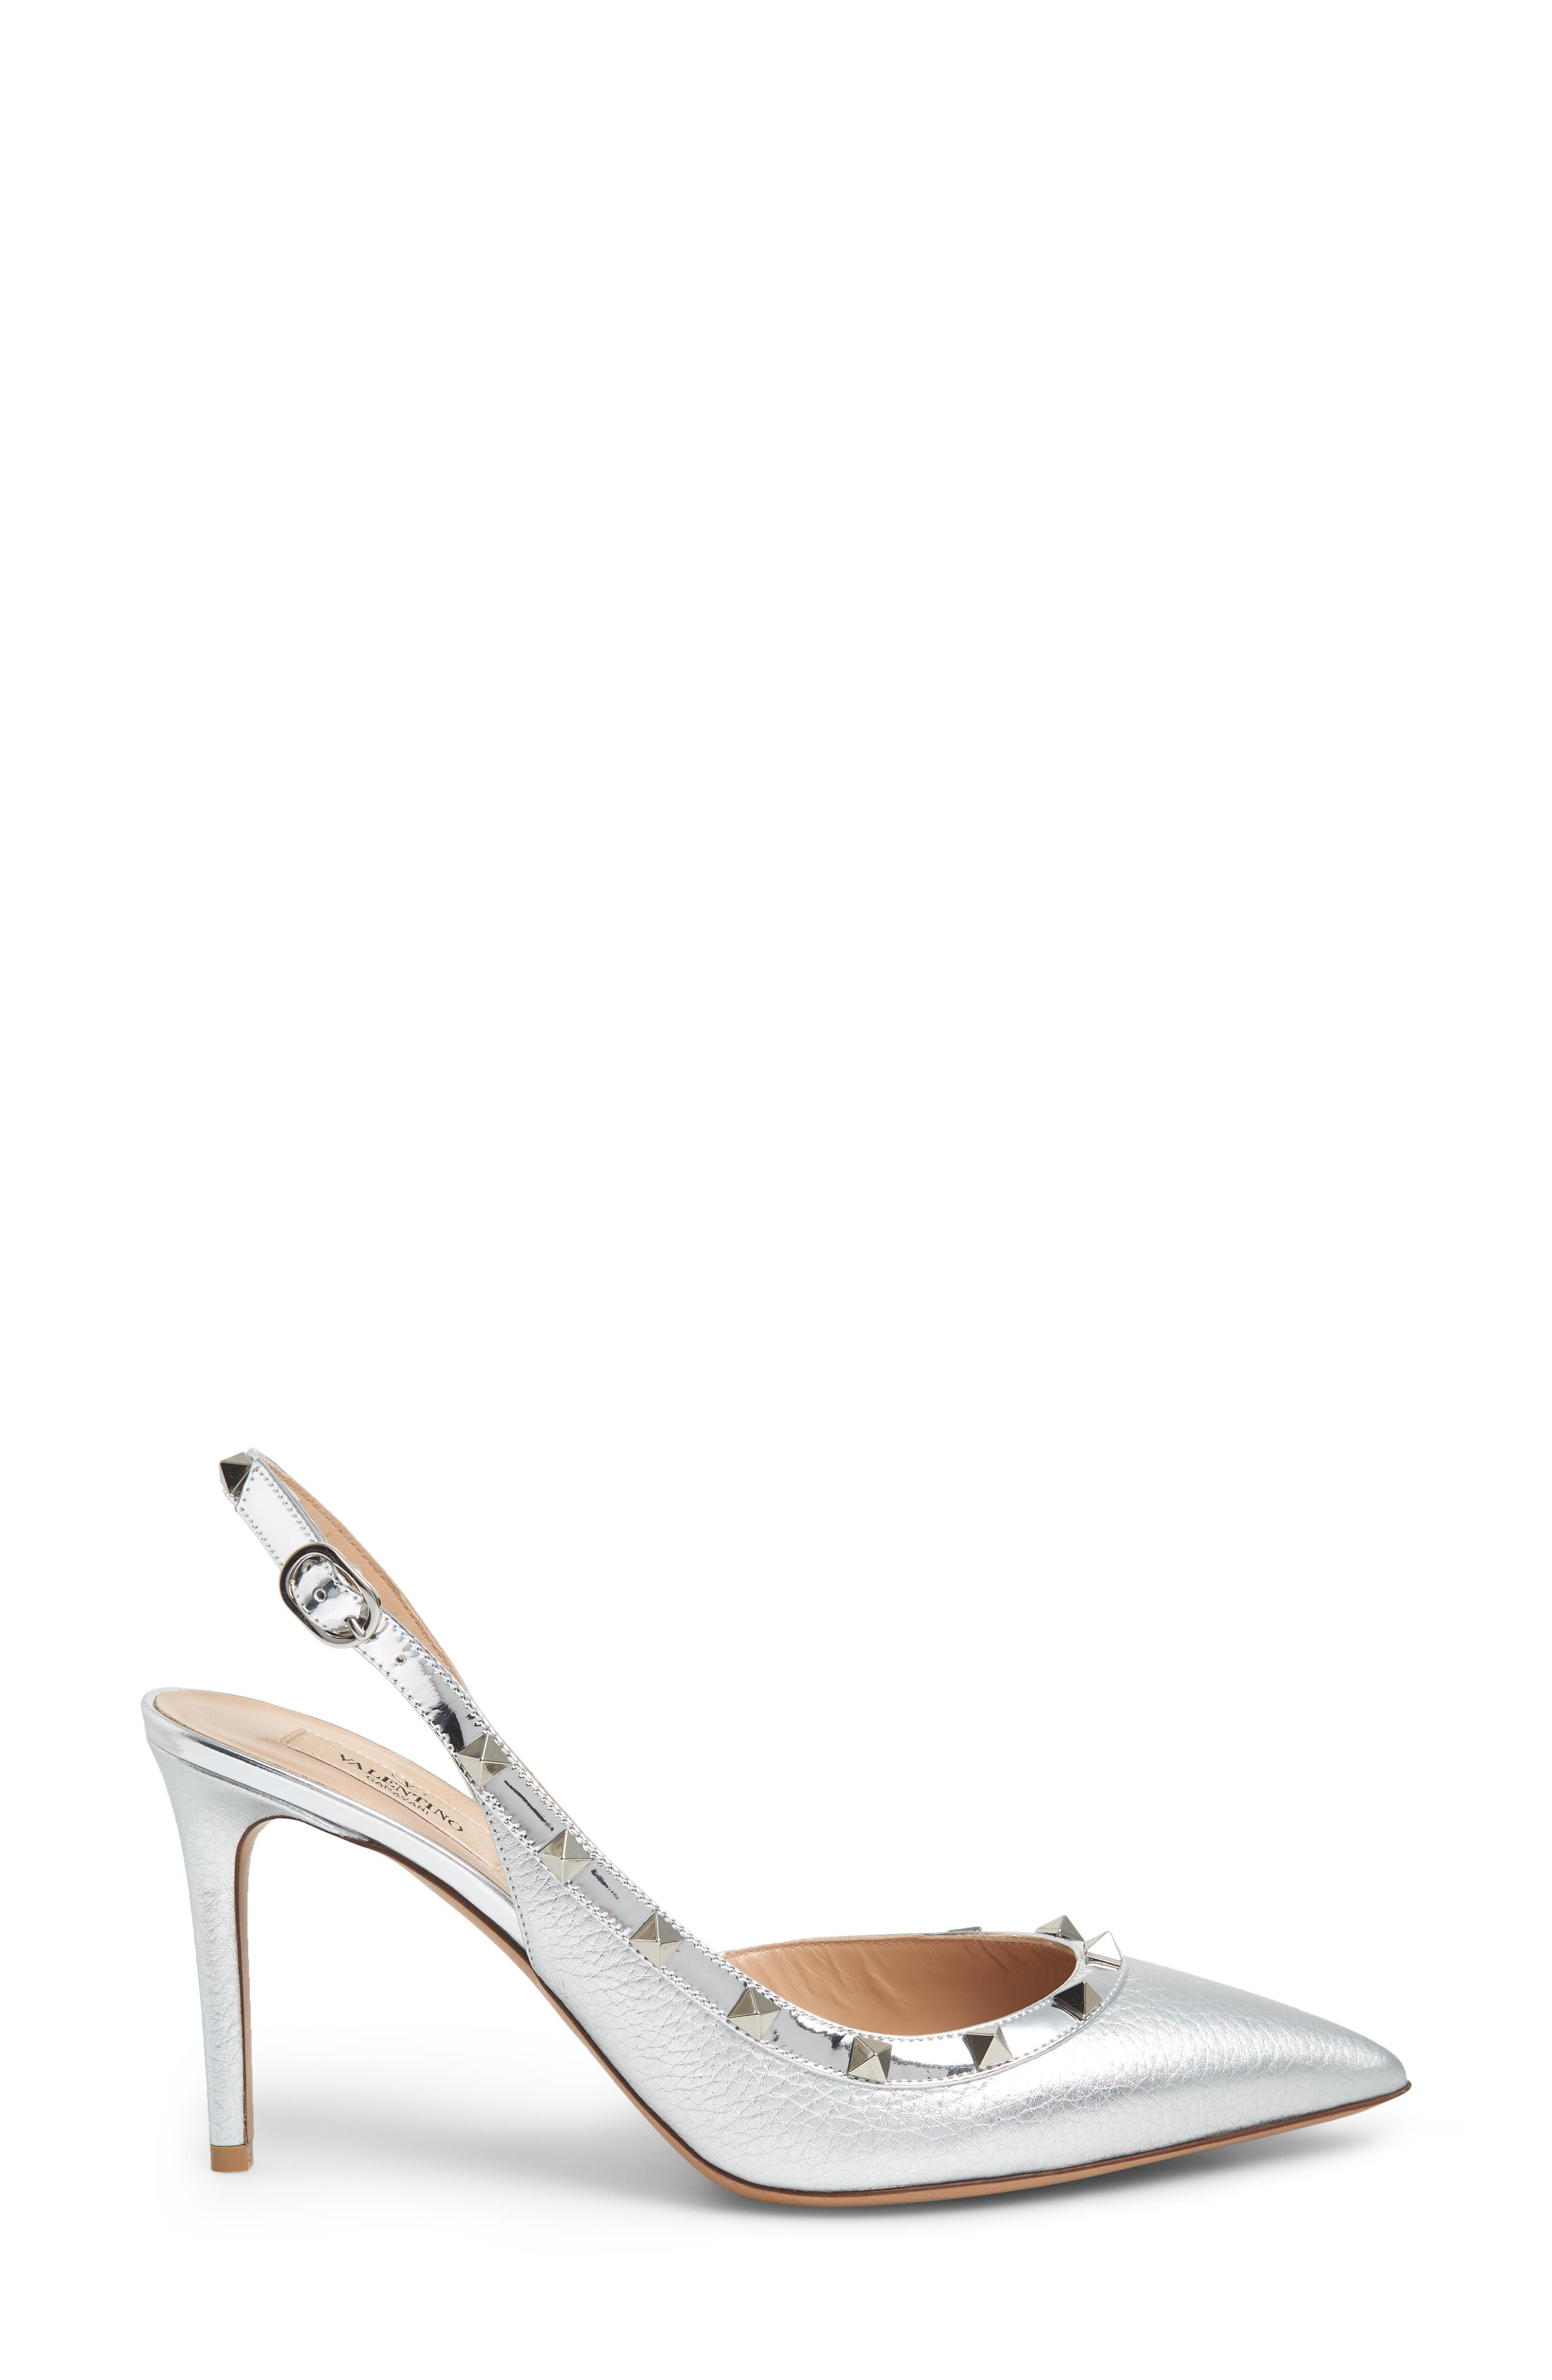 Rockstud Slingback Pump,                             Alternate thumbnail 3, color,                             SILVER